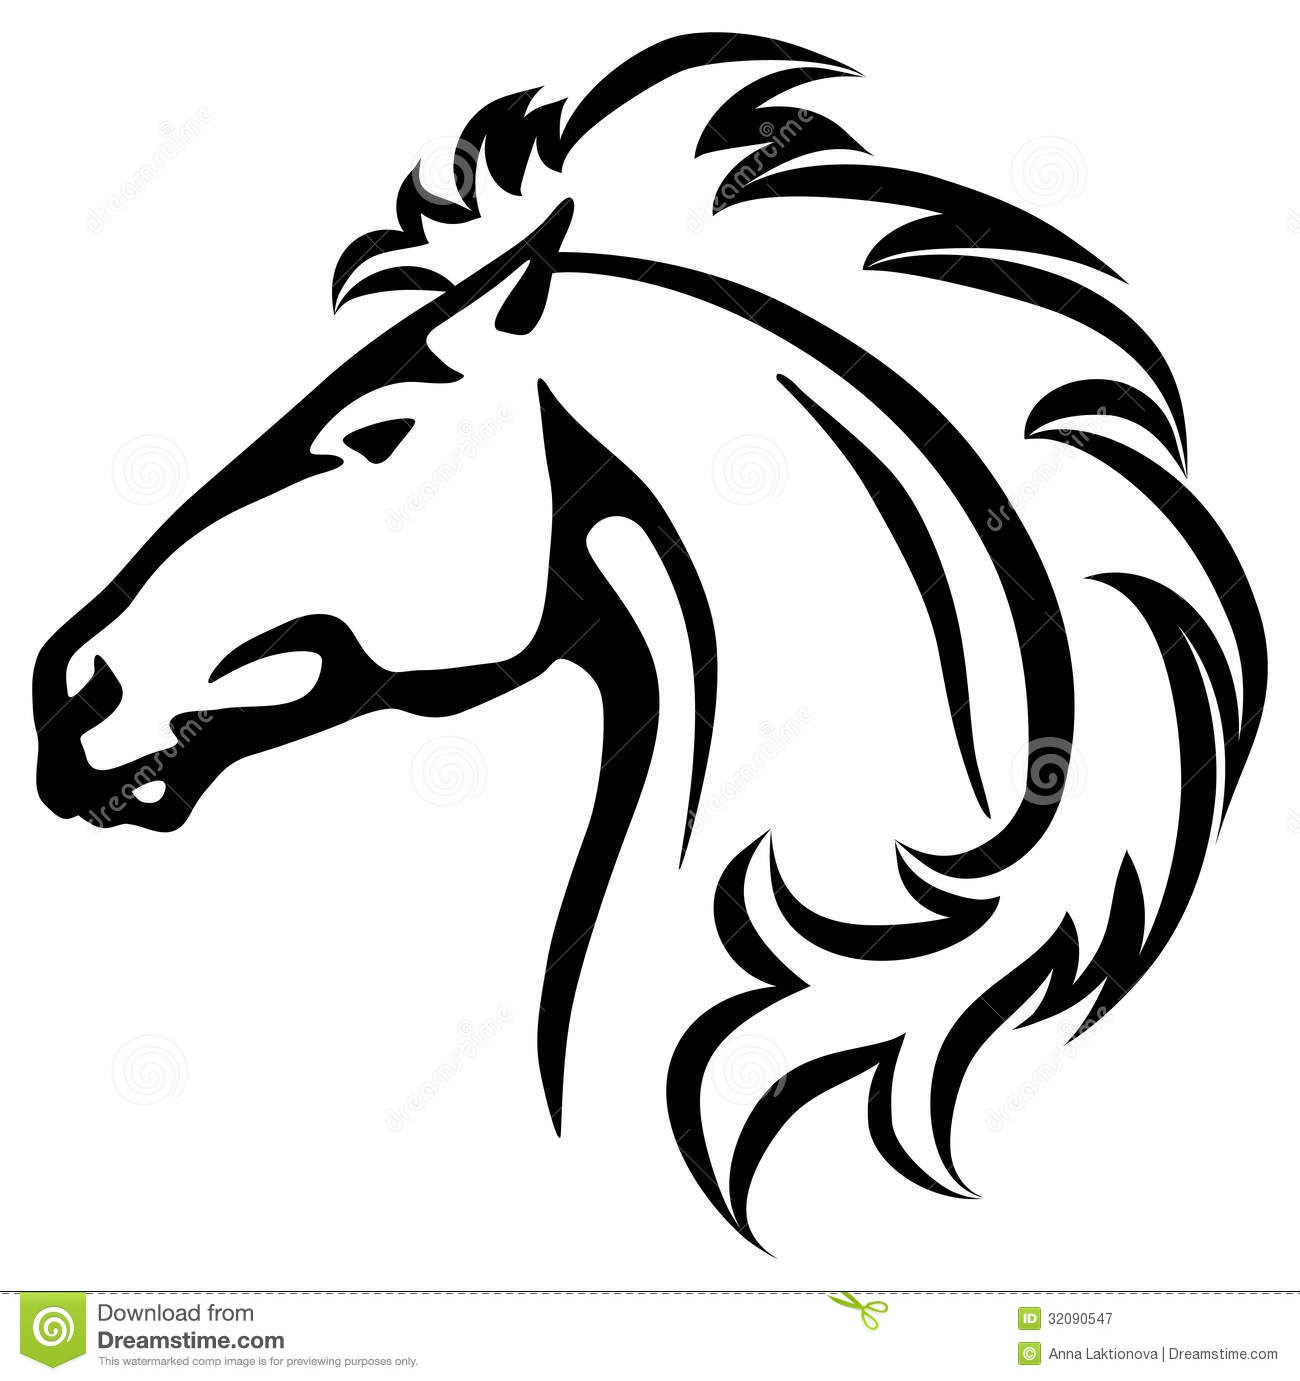 Royalty Free Stock Photography Wild Horse S Head Vector Illustration Image32090547 additionally Cartoon Shells additionally Set Of Human Barefoot Steps Footprints 34596 Vector Clipart furthermore Activities as well Clips Arts Pink Flip Flop. on sand border cartoon